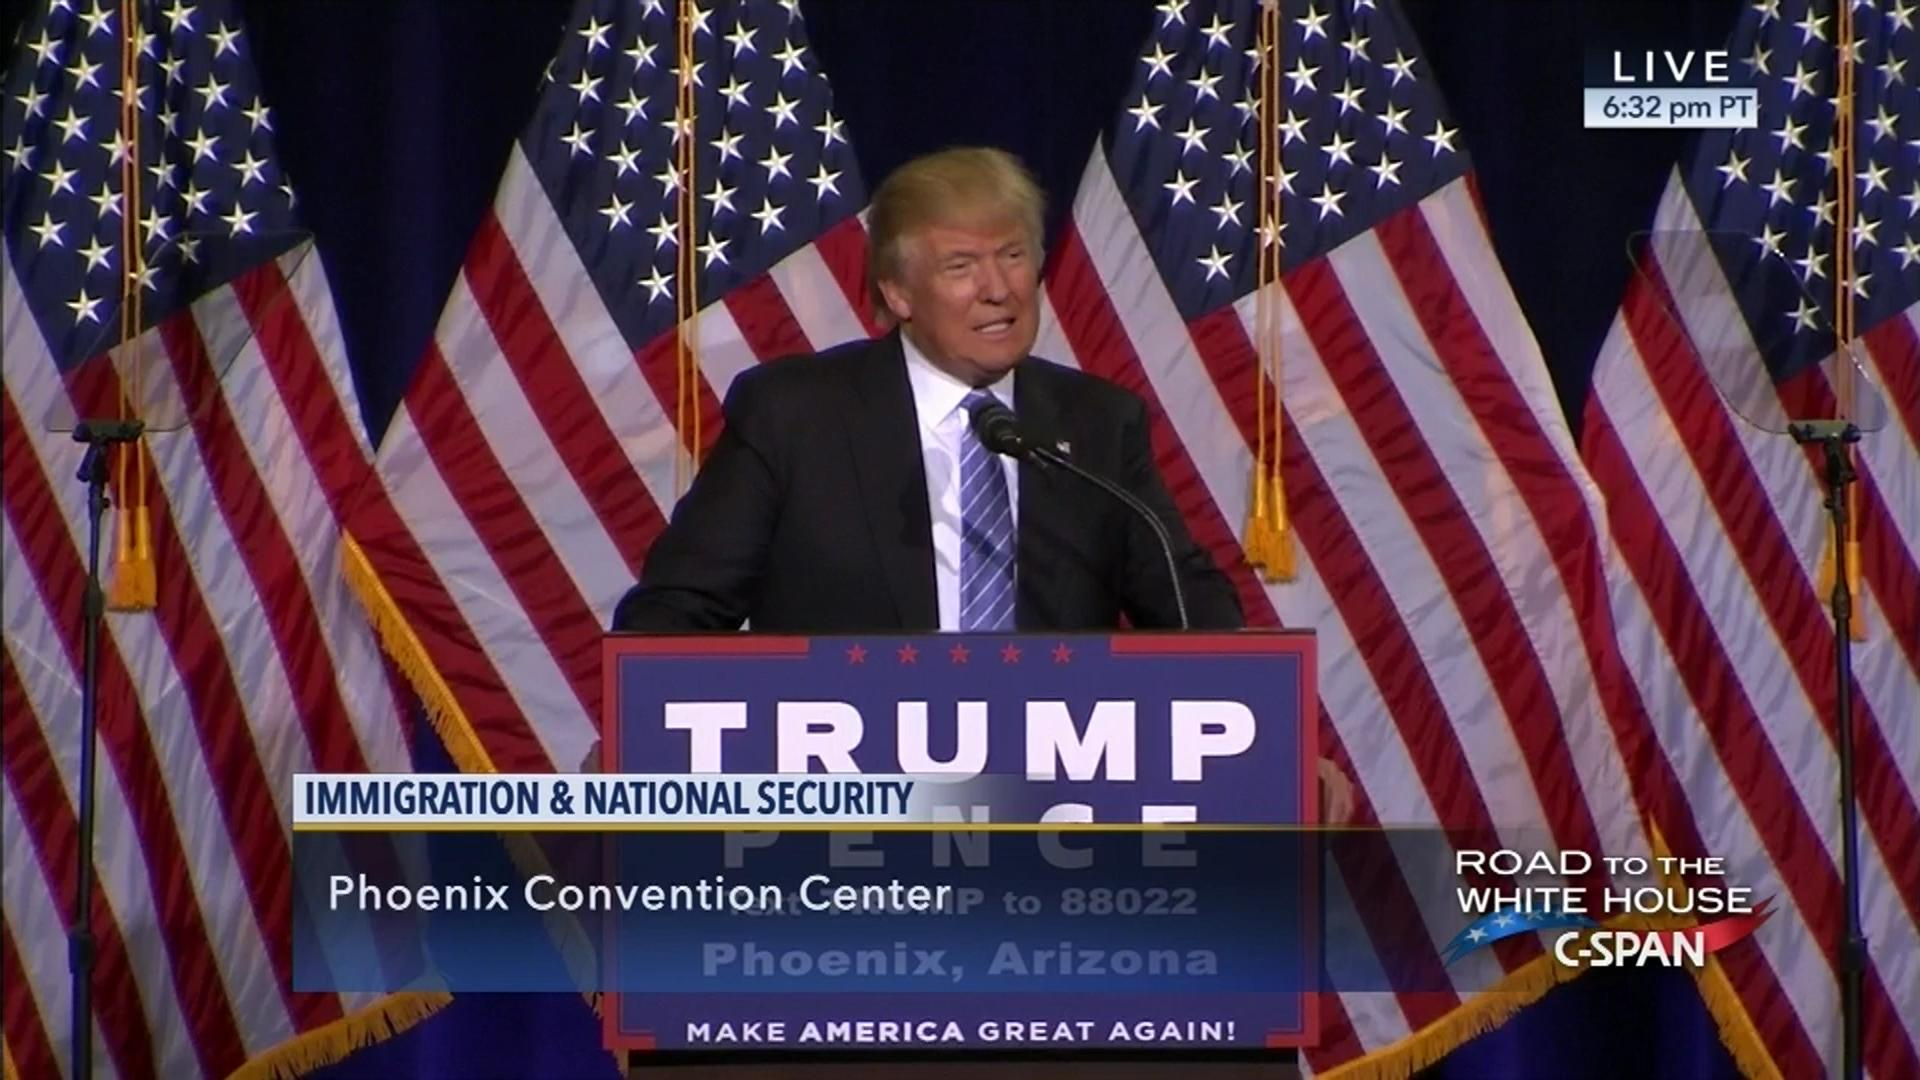 Donald Trump Delivers Immigration Policy Address, Aug 31 2016  Cspan